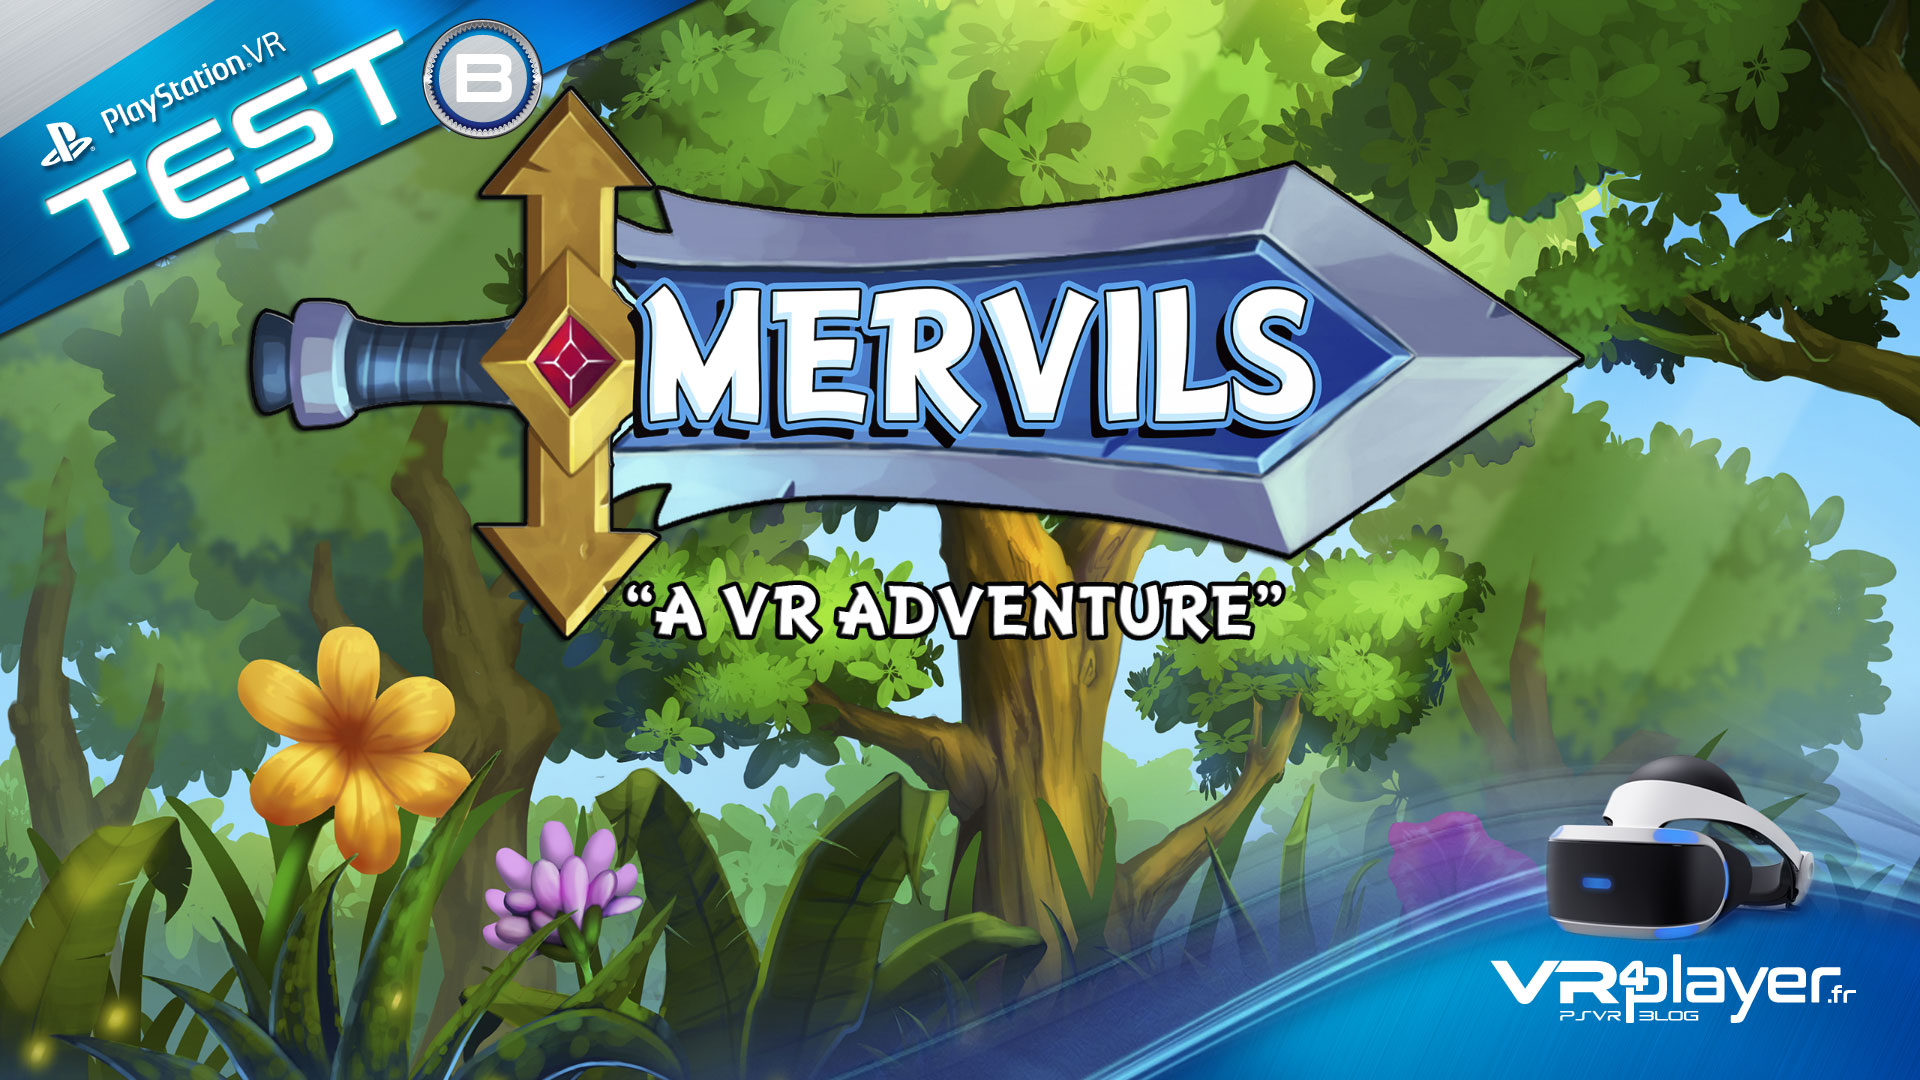 Mervils le test vr4player.fr